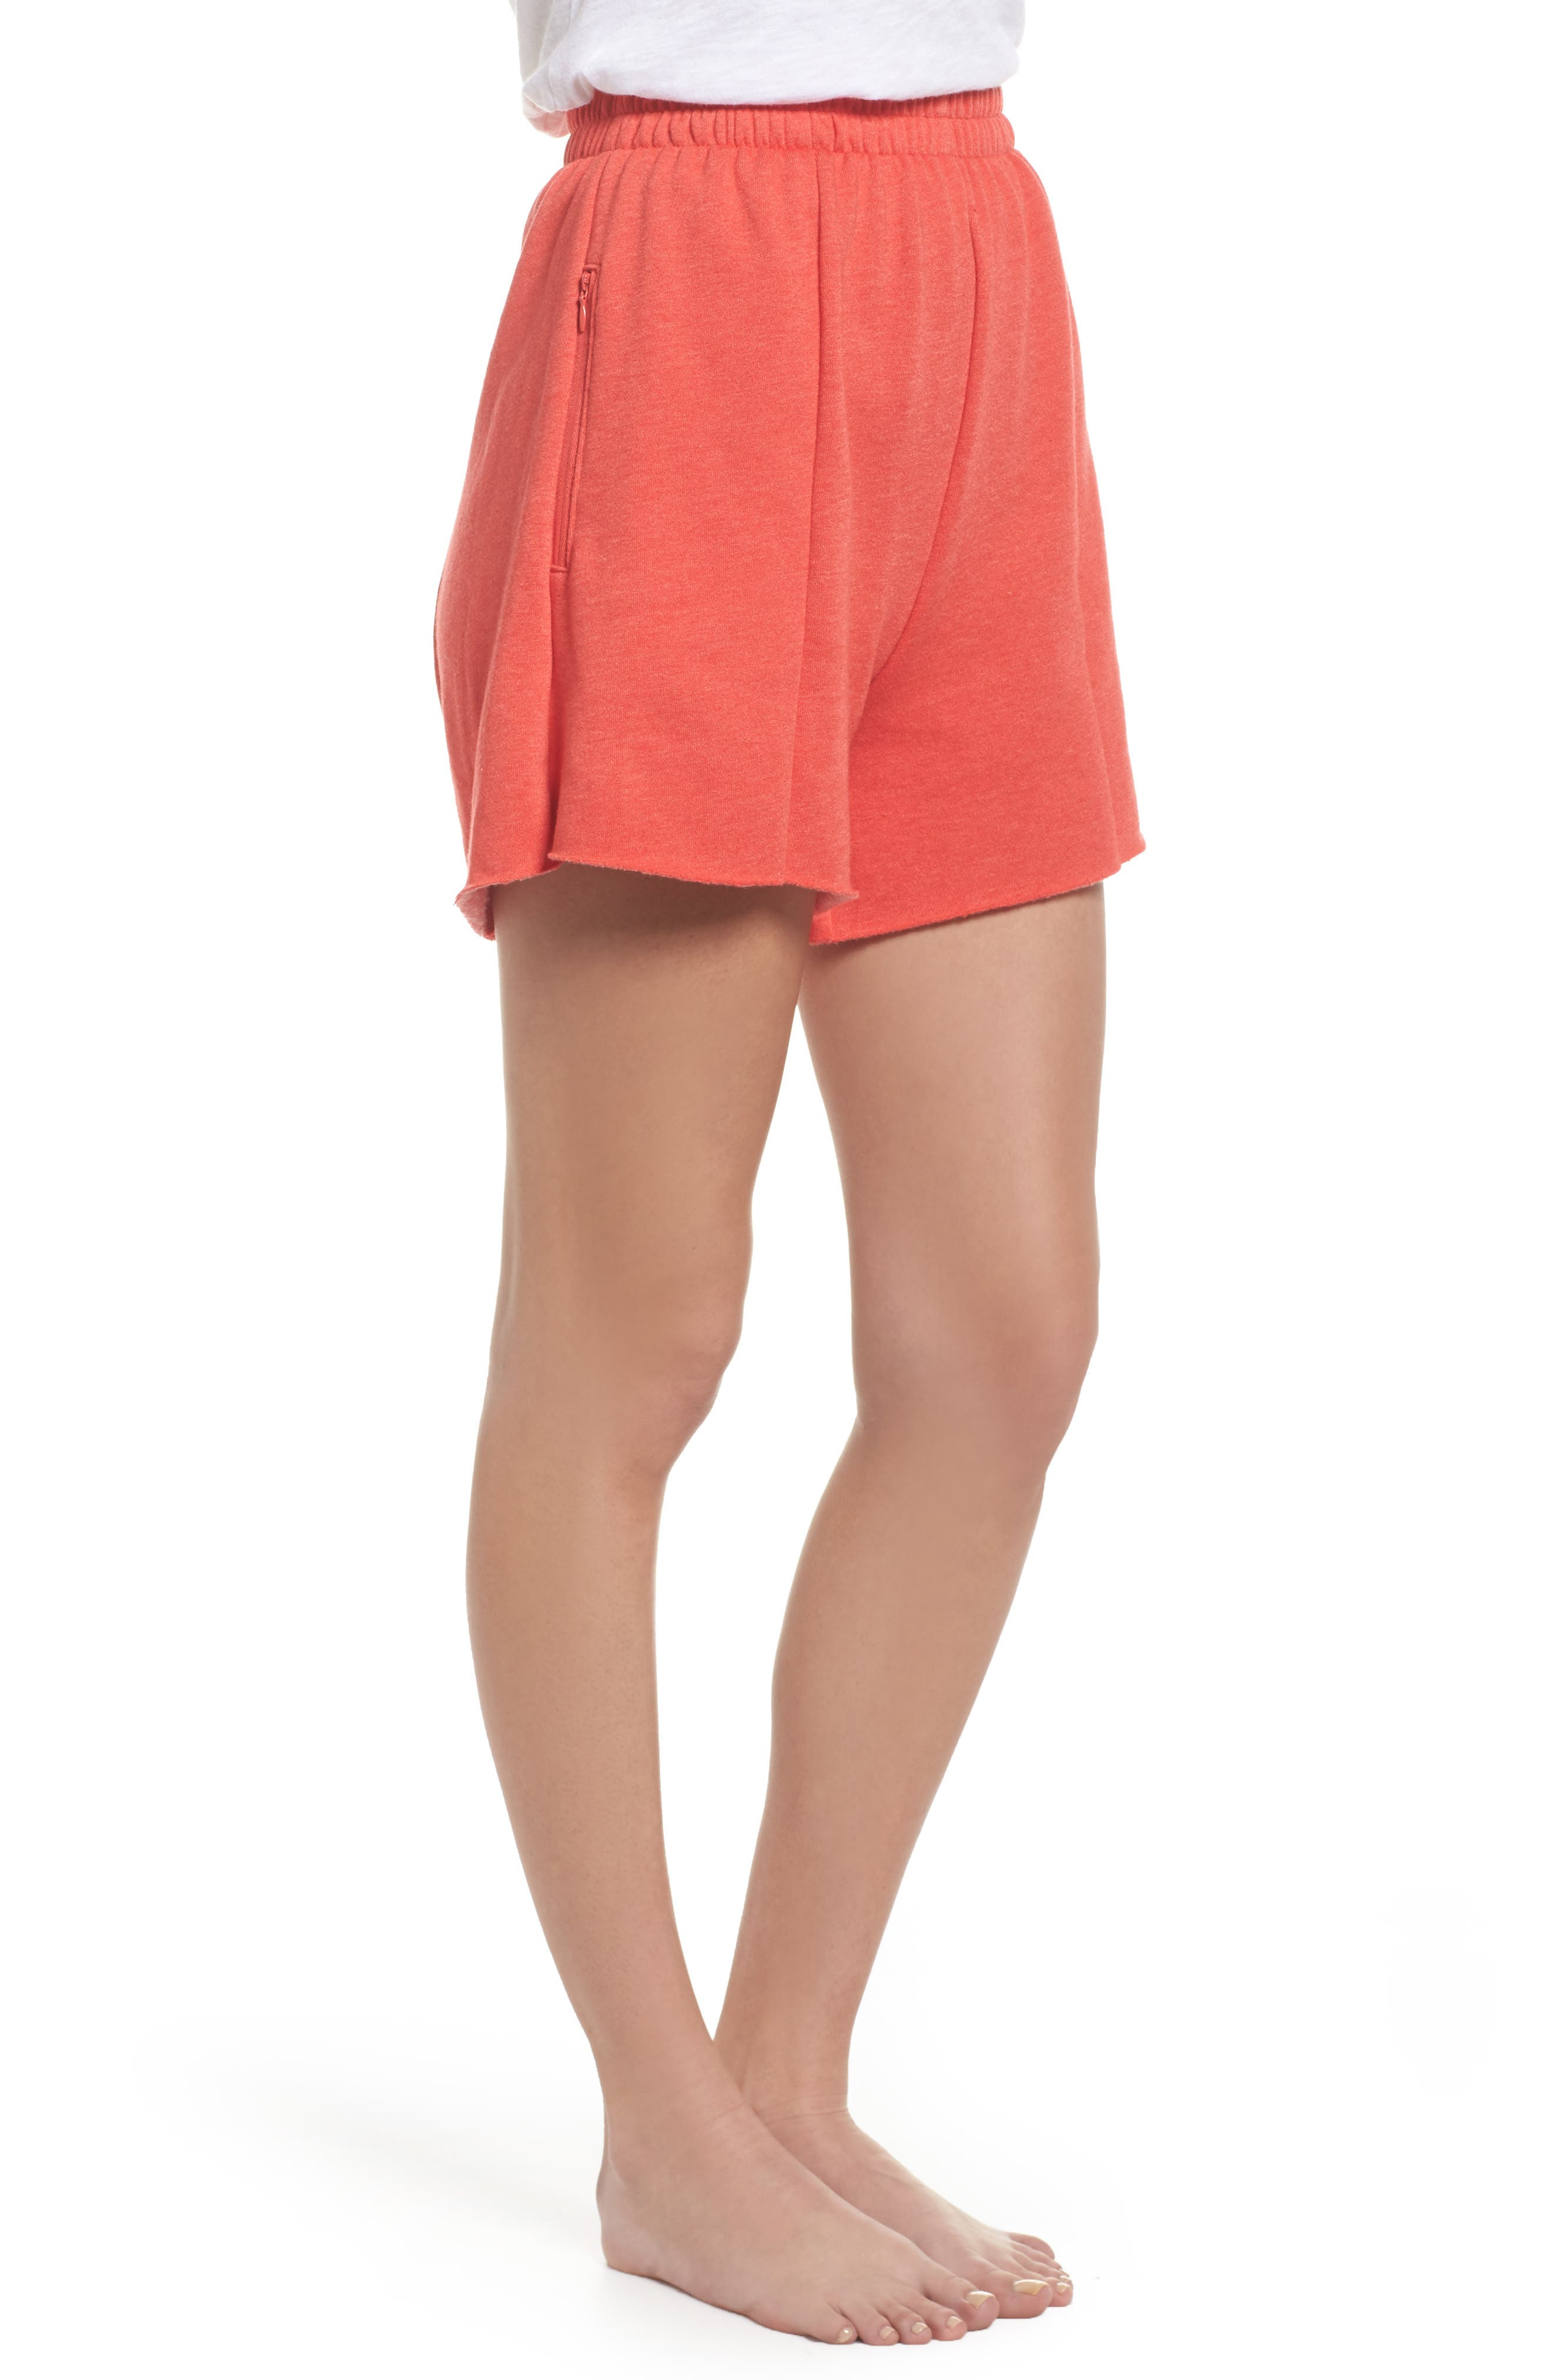 Bermuda Lounge Shorts,                             Alternate thumbnail 3, color,                             Love Red